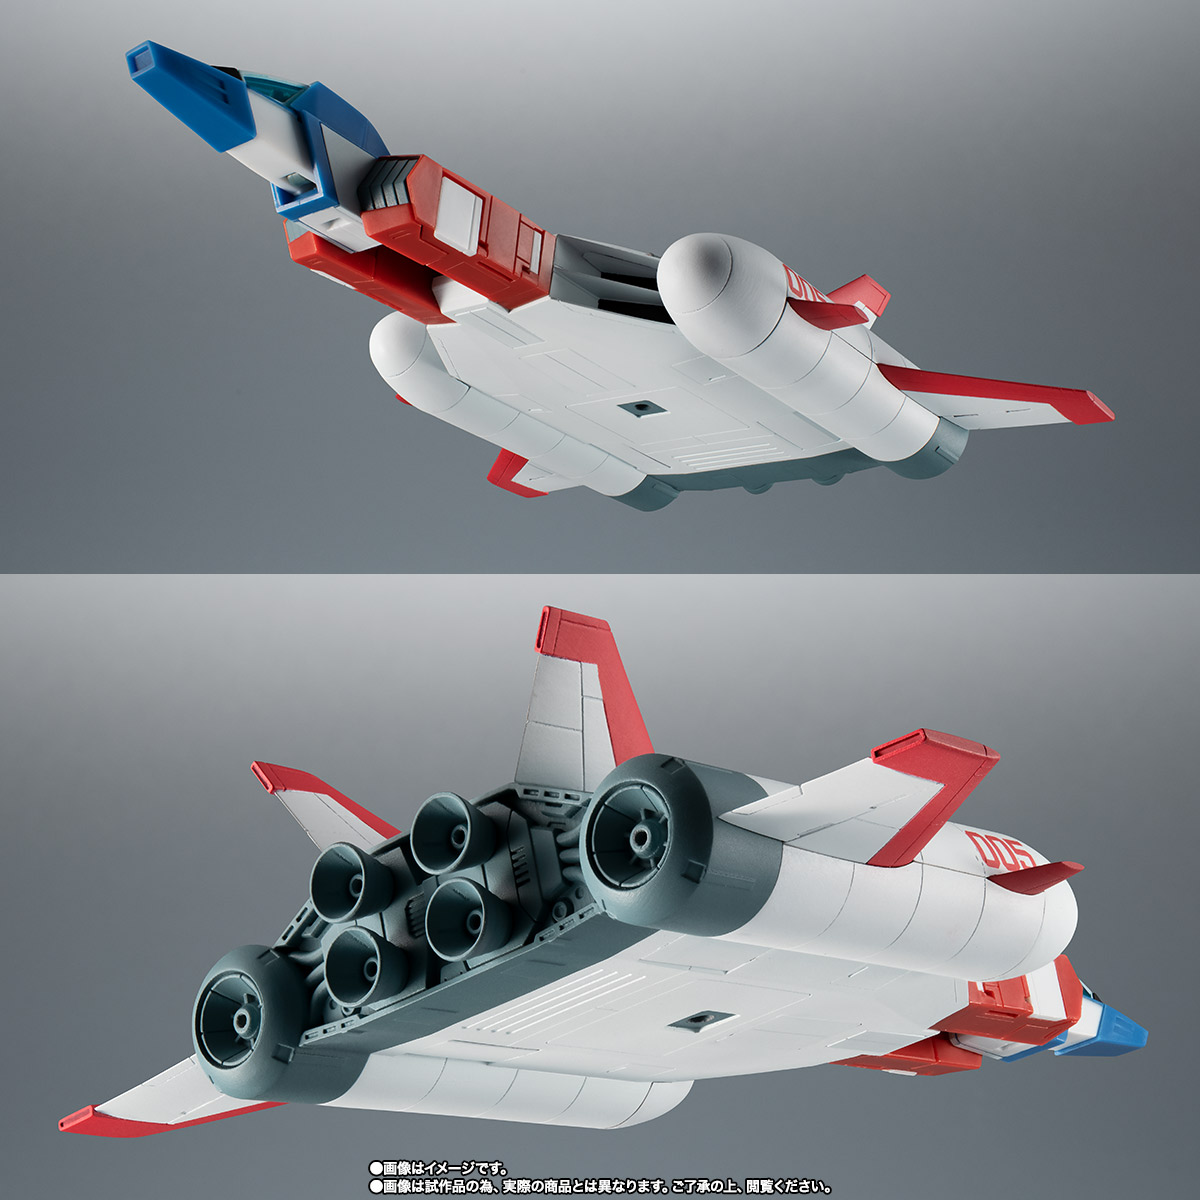 ROBOT魂 <SIDE MS> FF-X7-Bst コア・ブースター 2機セット ver. A.N.I.M.E. ~スレッガー005 & セイラ006~ 09